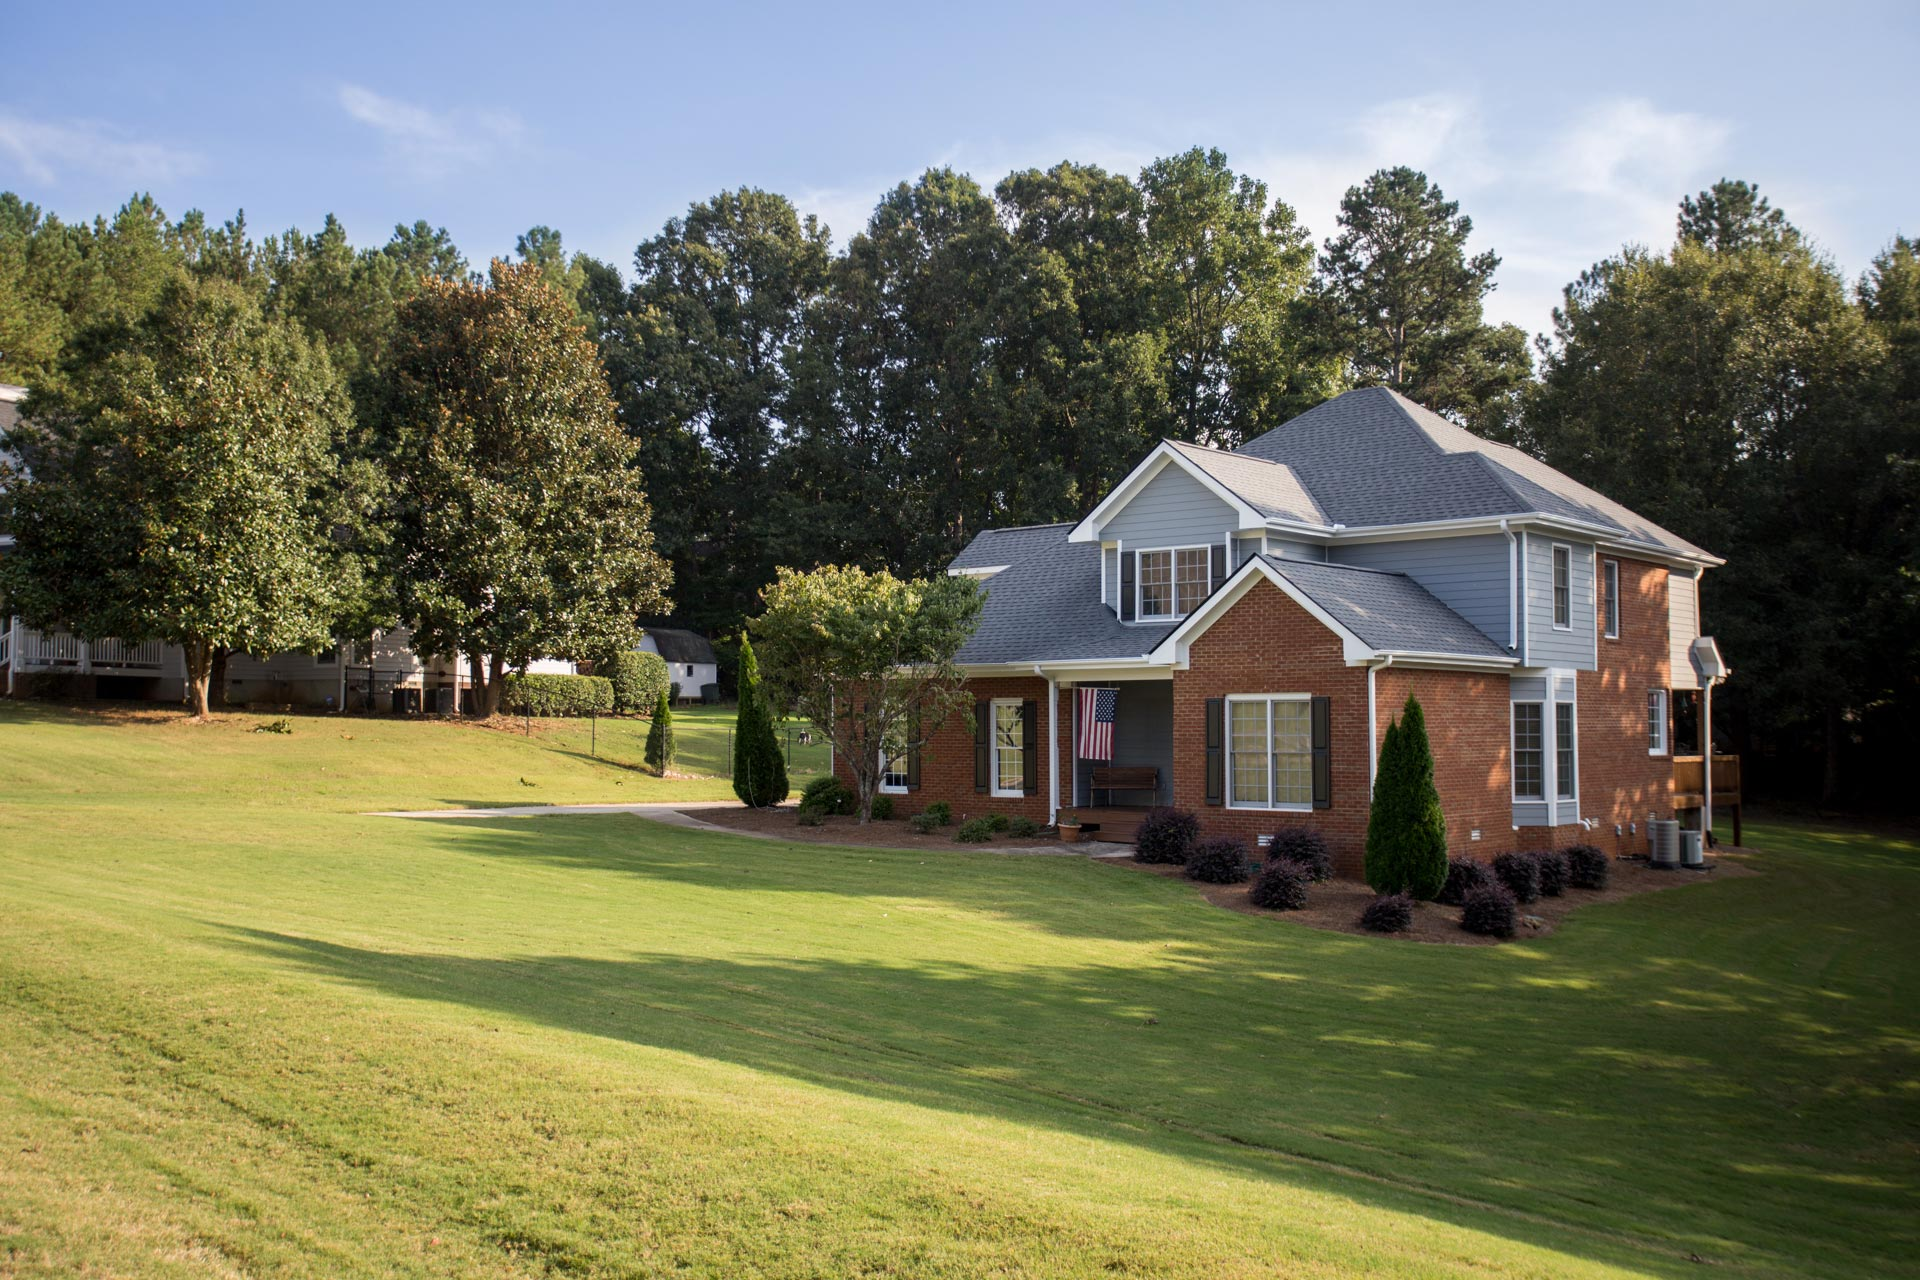 Roofing Repair and Replacement in Watkinsville. Roofing in Watkinsville.